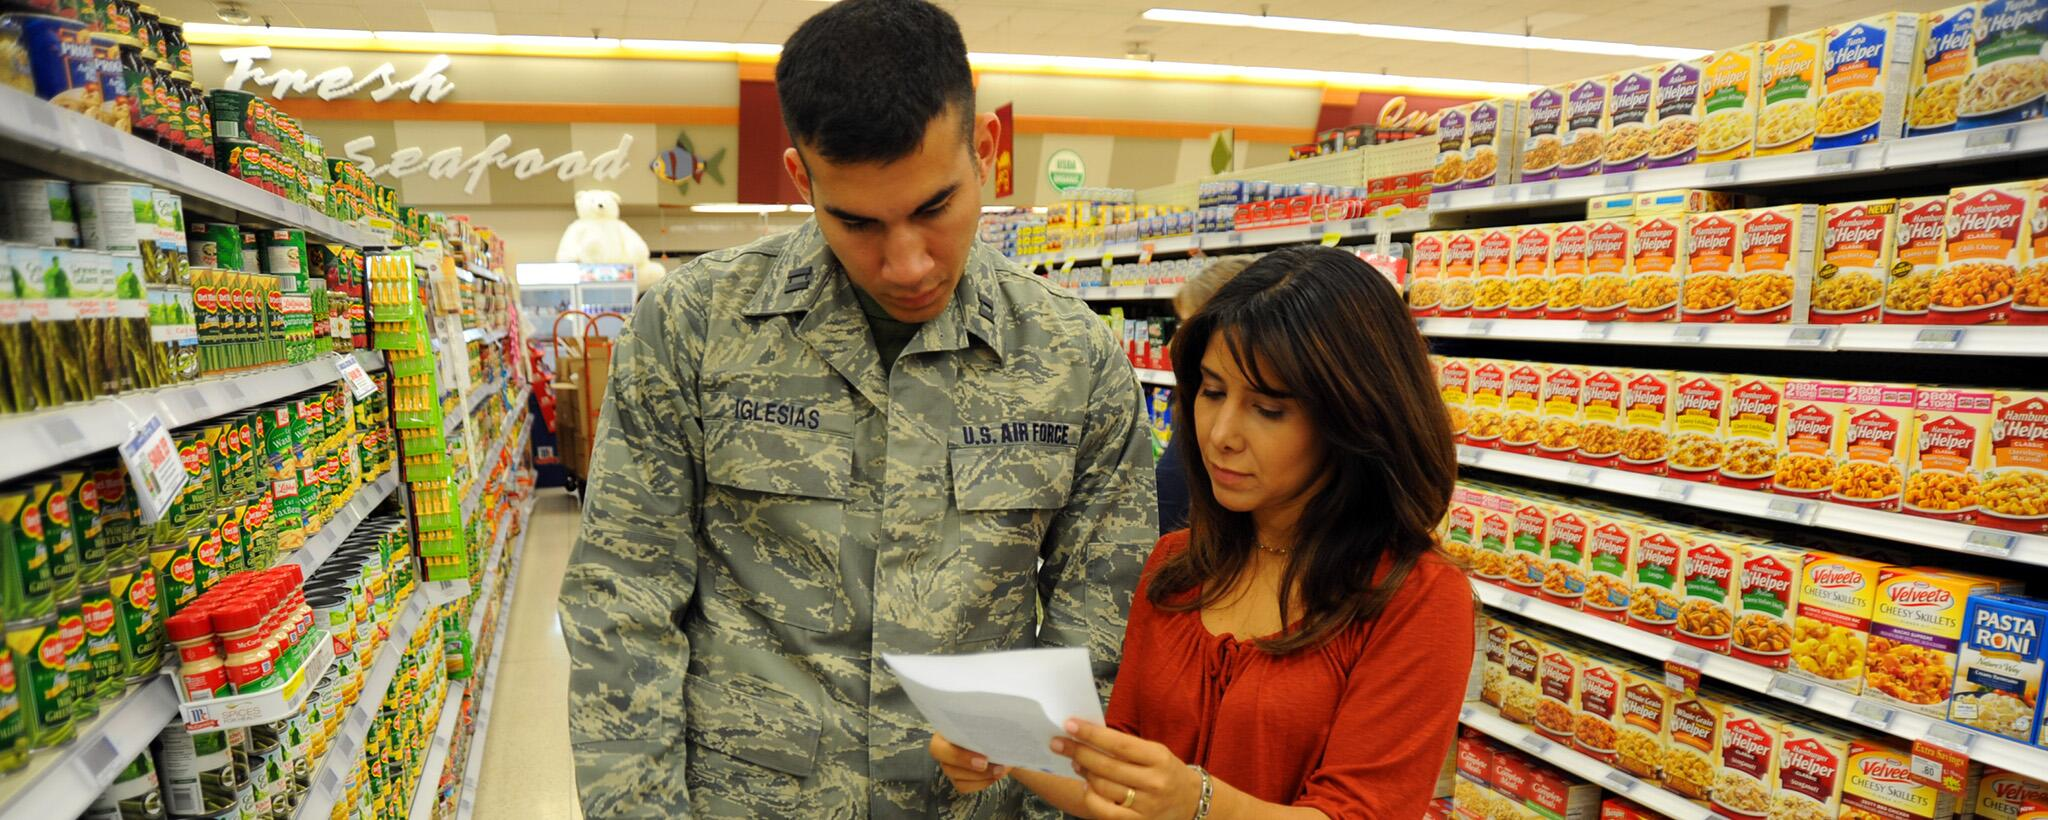 military family shopping for food in grocery store